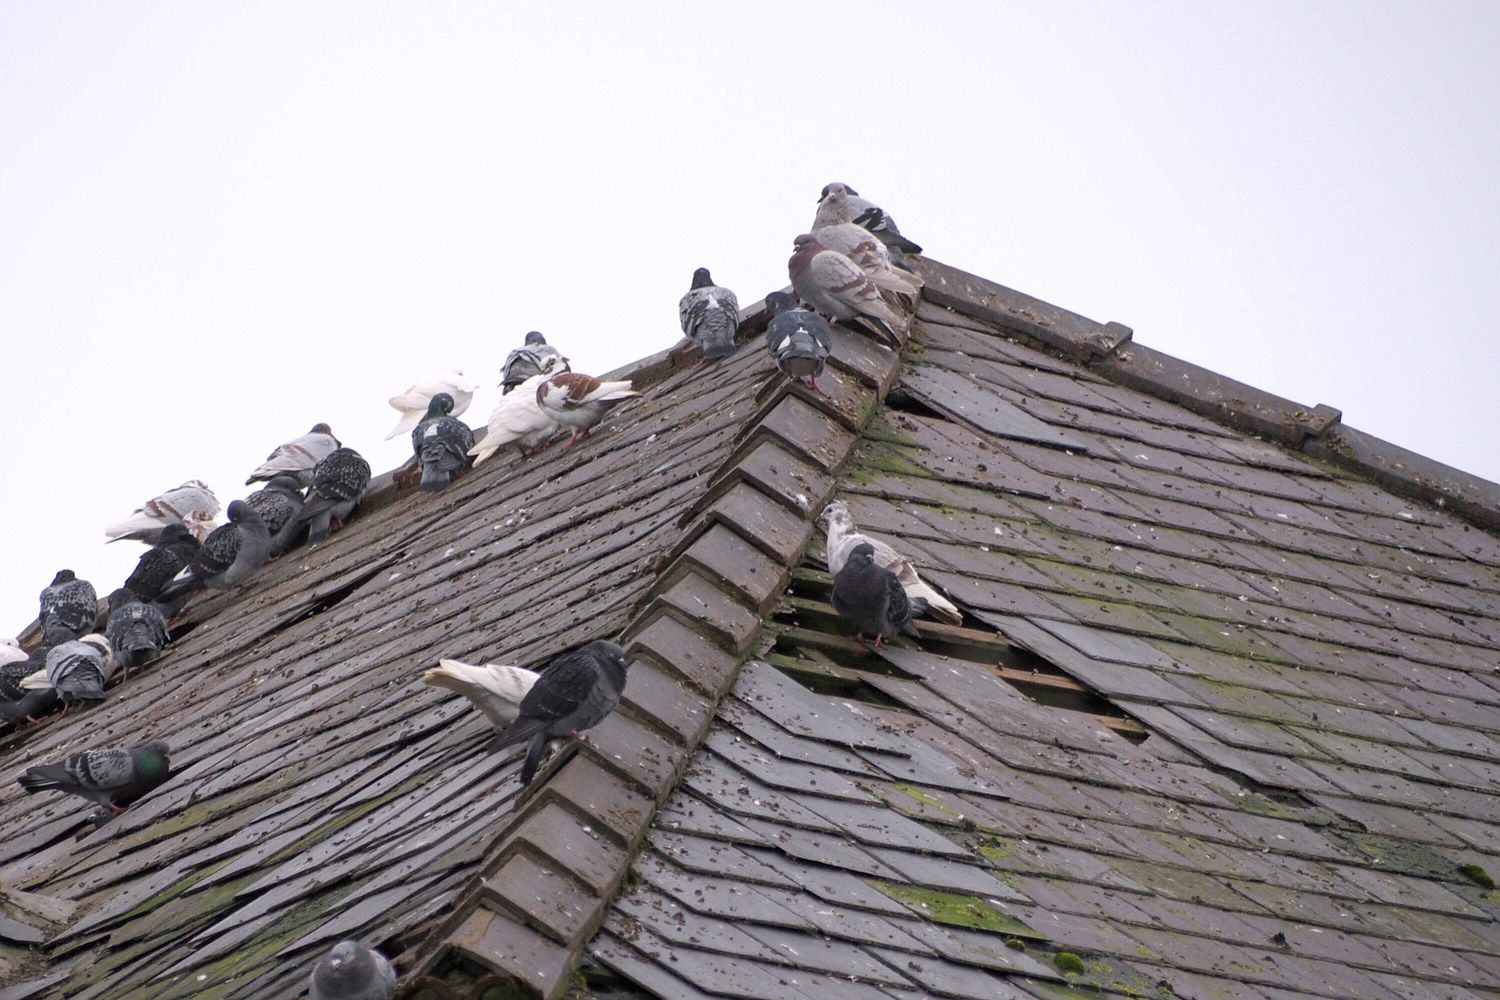 Cannabis Farm Discovered After Pigeons Take A Liking To Warm Roof 01 13231107 f2c56f 2602597a